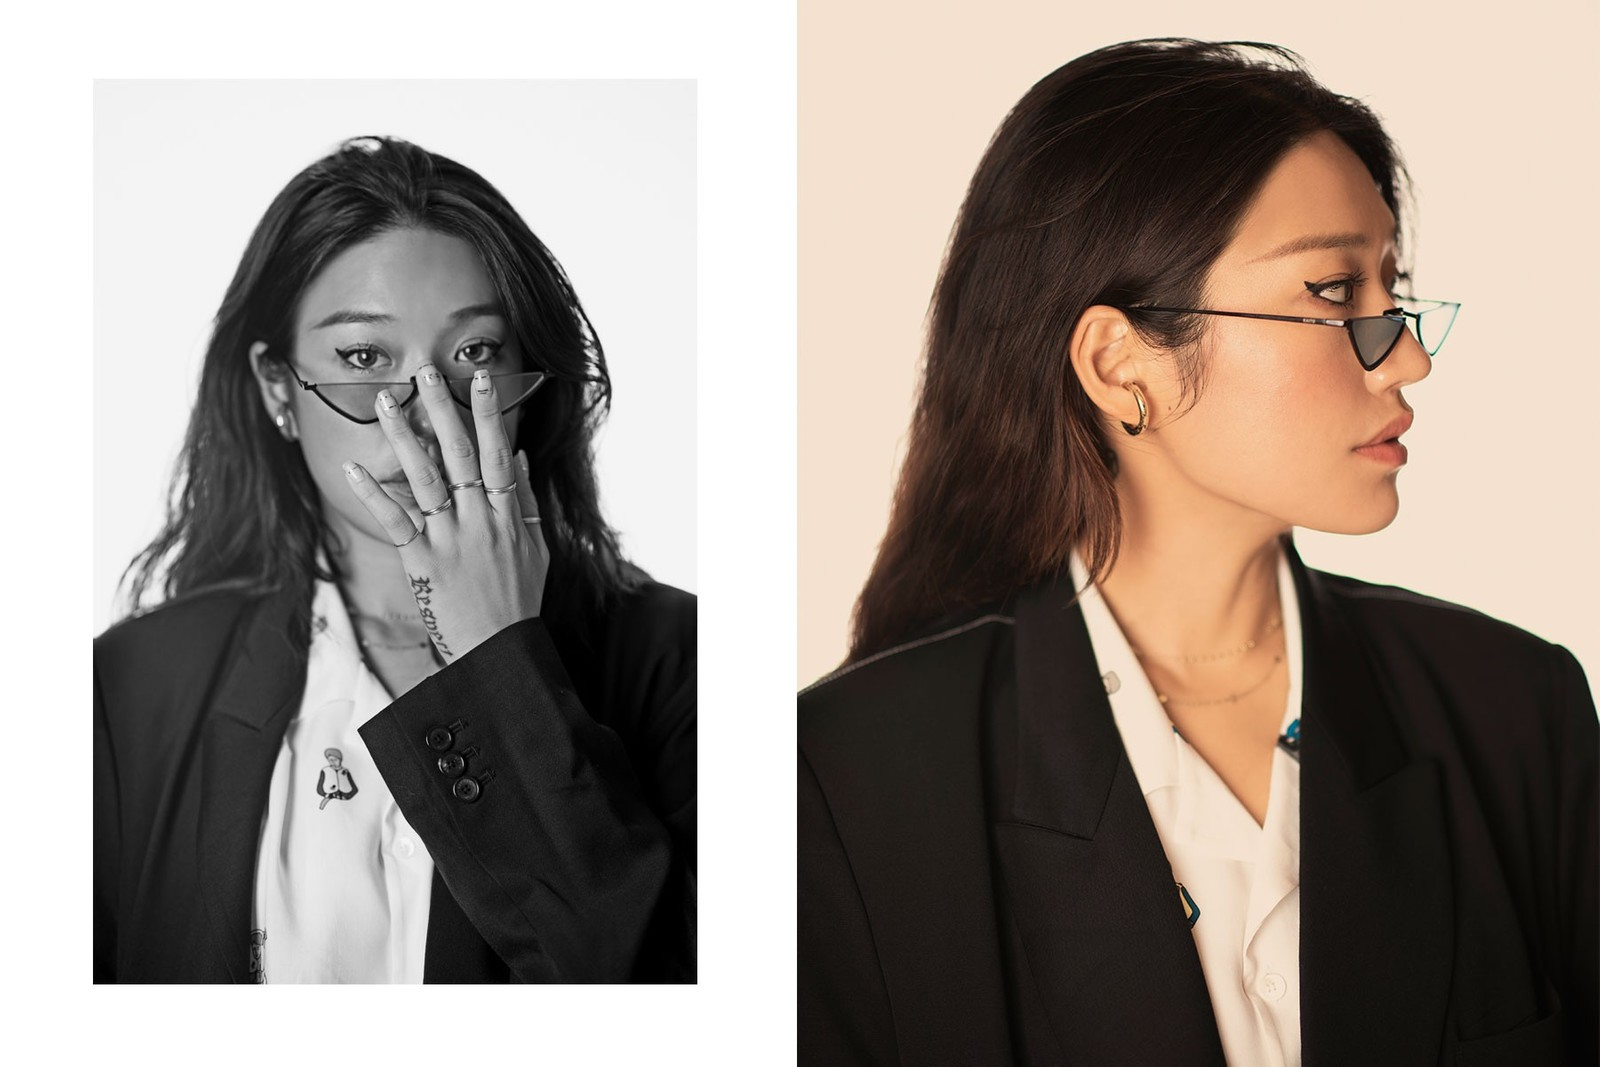 Peggy Gou DJ Kirin Fashion Launch Interview Career Hong Kong Korea Berlin London Info Buy Korean Female Woman New Guards Group